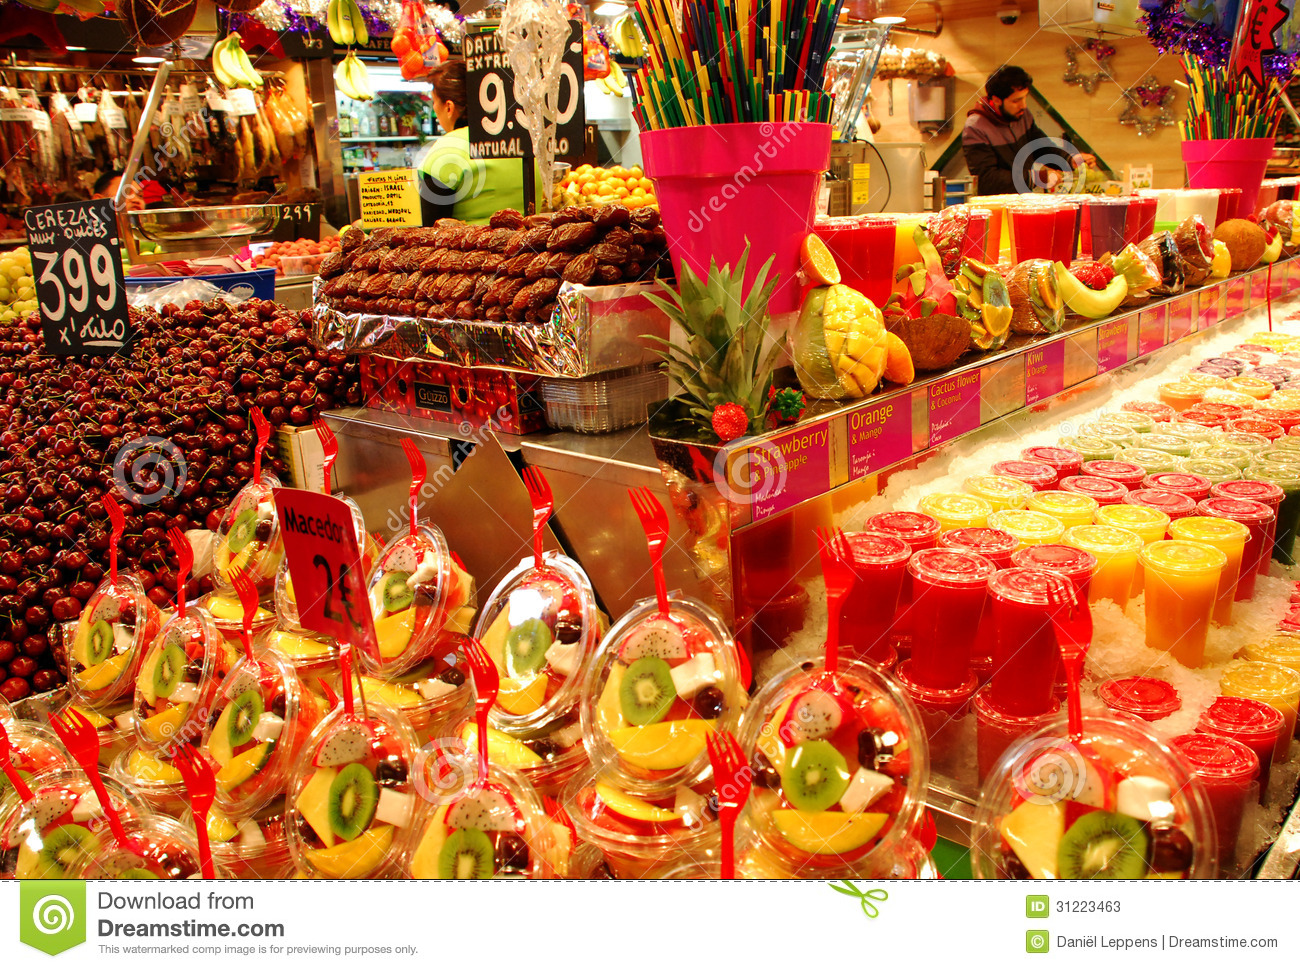 ... is located nearthe Ramblas and offers fresh fruit and vegetables